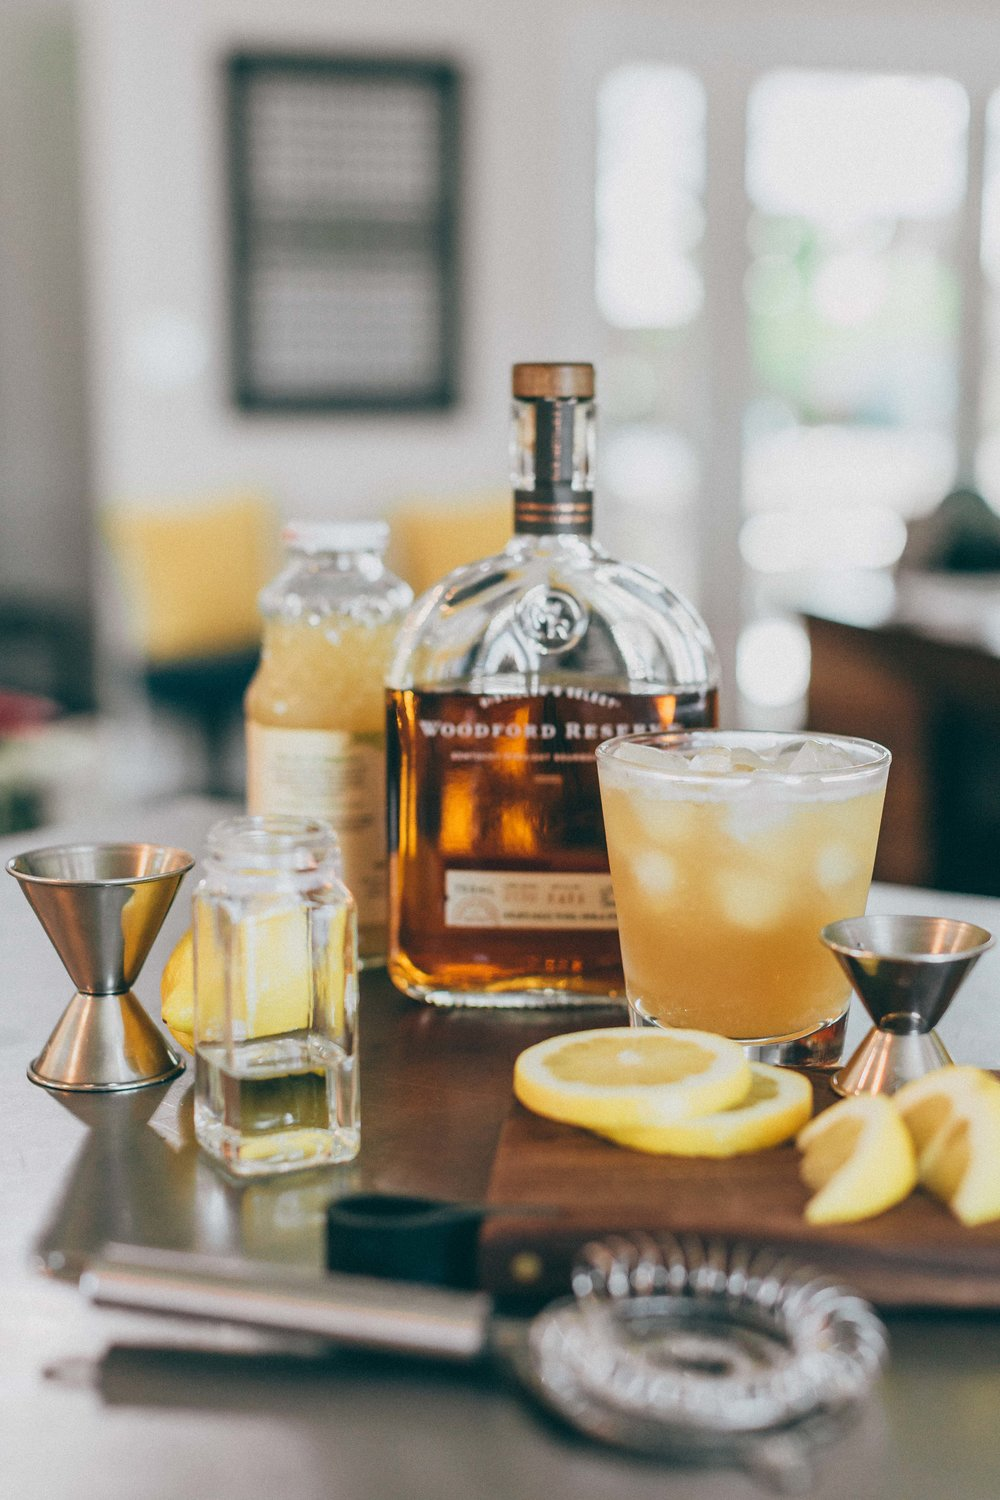 2017-Rogue-Whiskey-Sour-022-sm.jpg